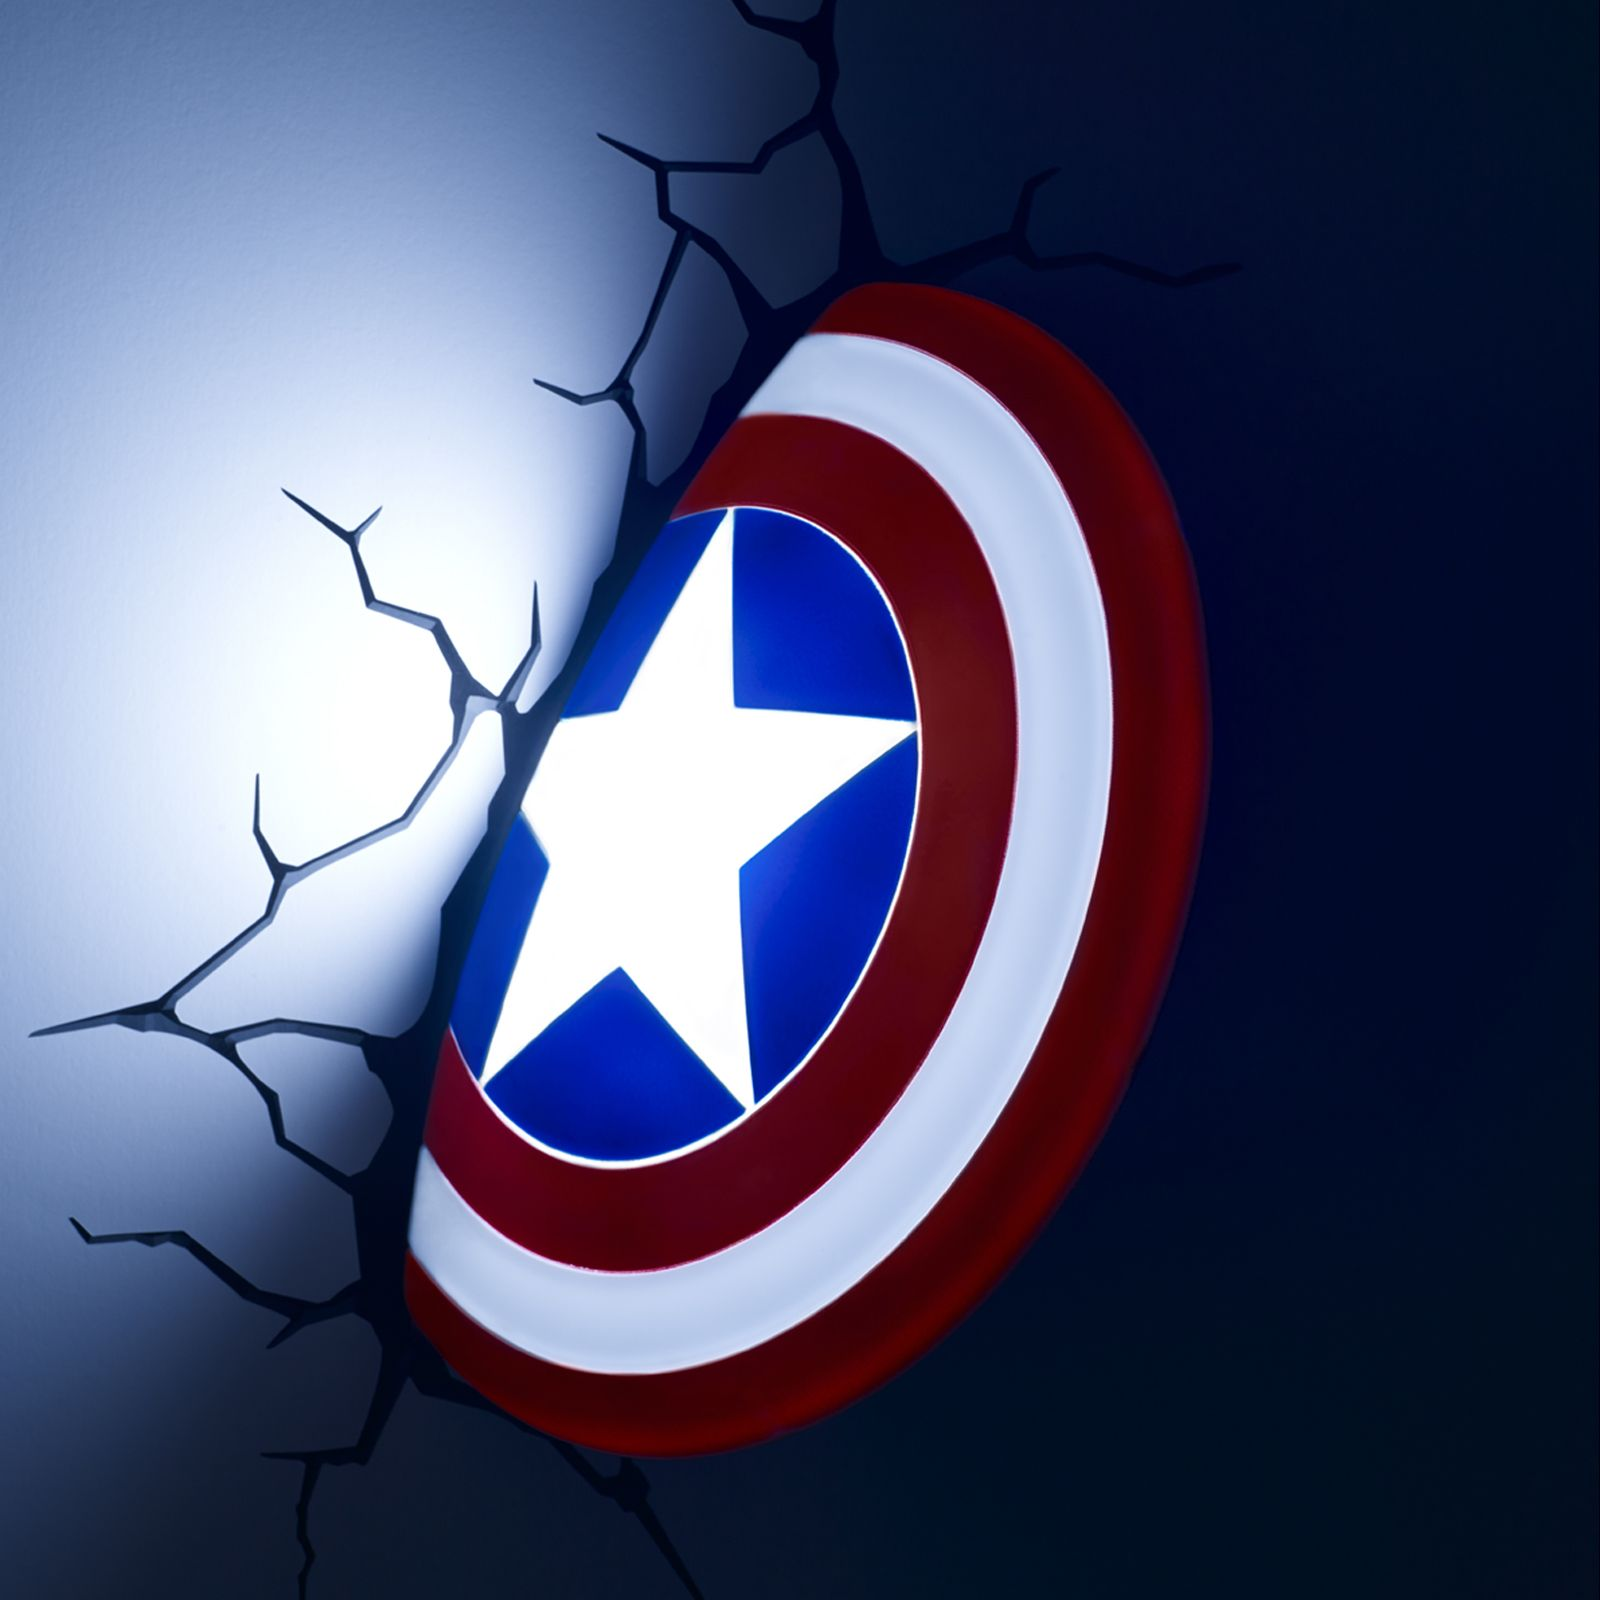 Wall Lamps Avengers : MARVEL AVENGERS 3D WALL LIGHT - HULK, IRON MAN, CAPTAIN AMERICA, THOR, SPIDERMAN eBay